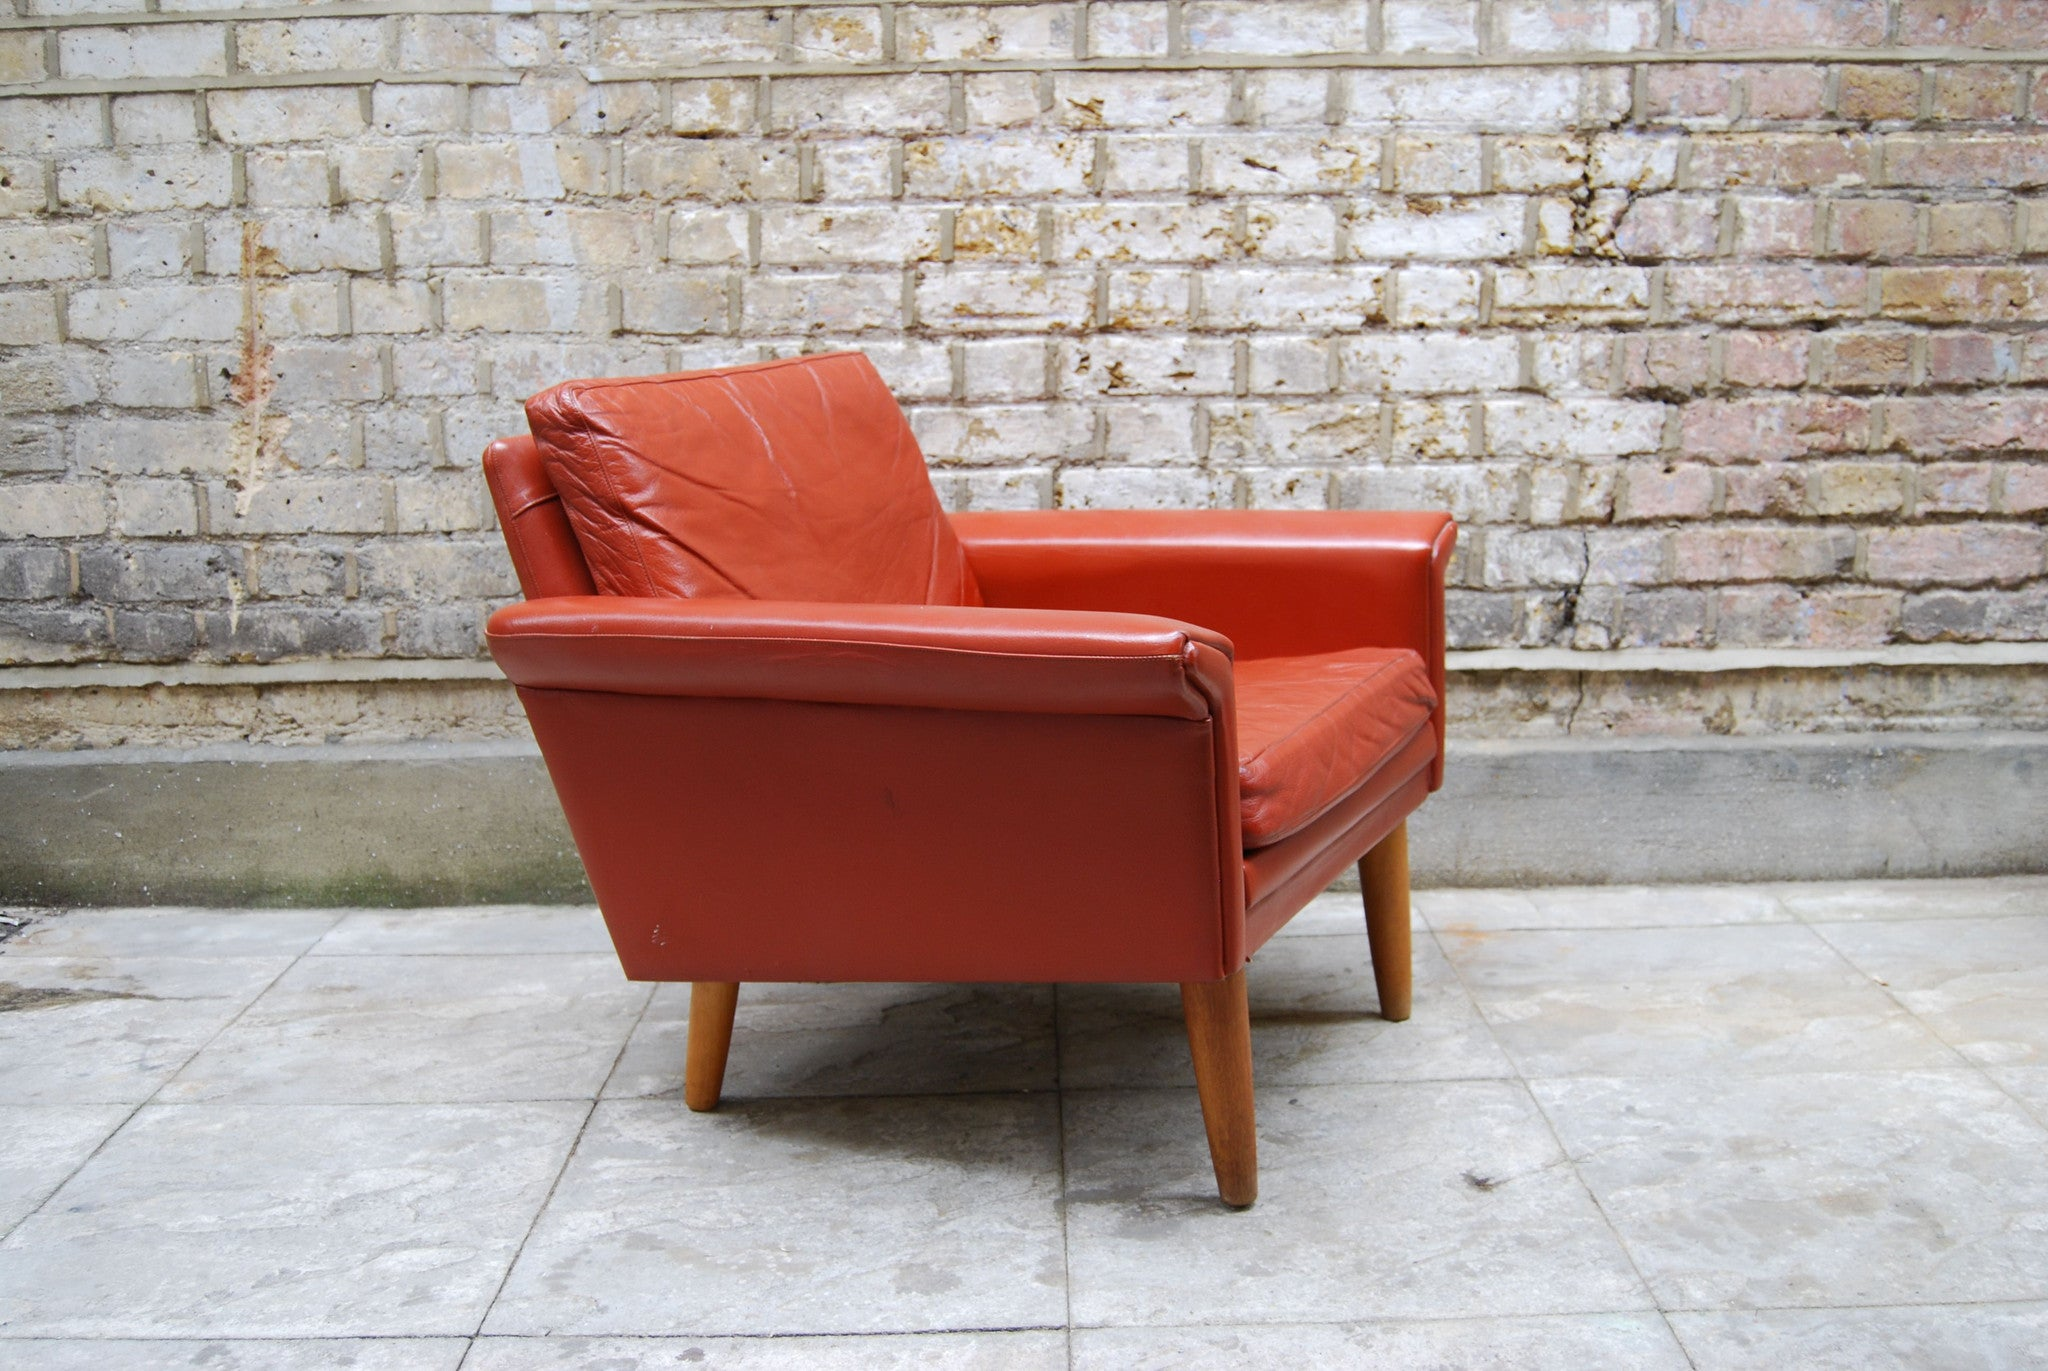 Lowback lounge chair in red leather